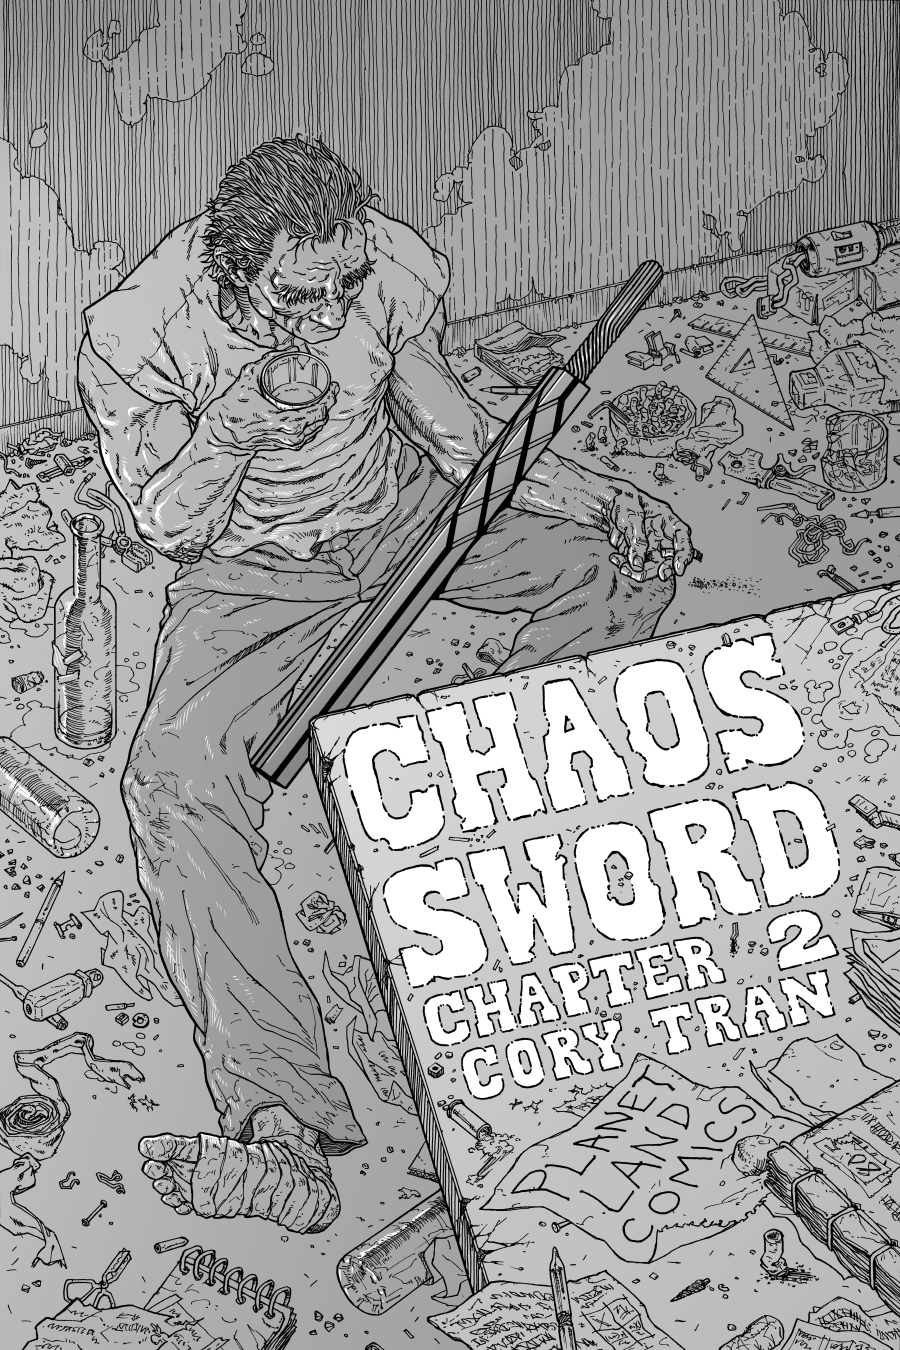 Chaos Sword Chapter 2 Cover by Cory Tran